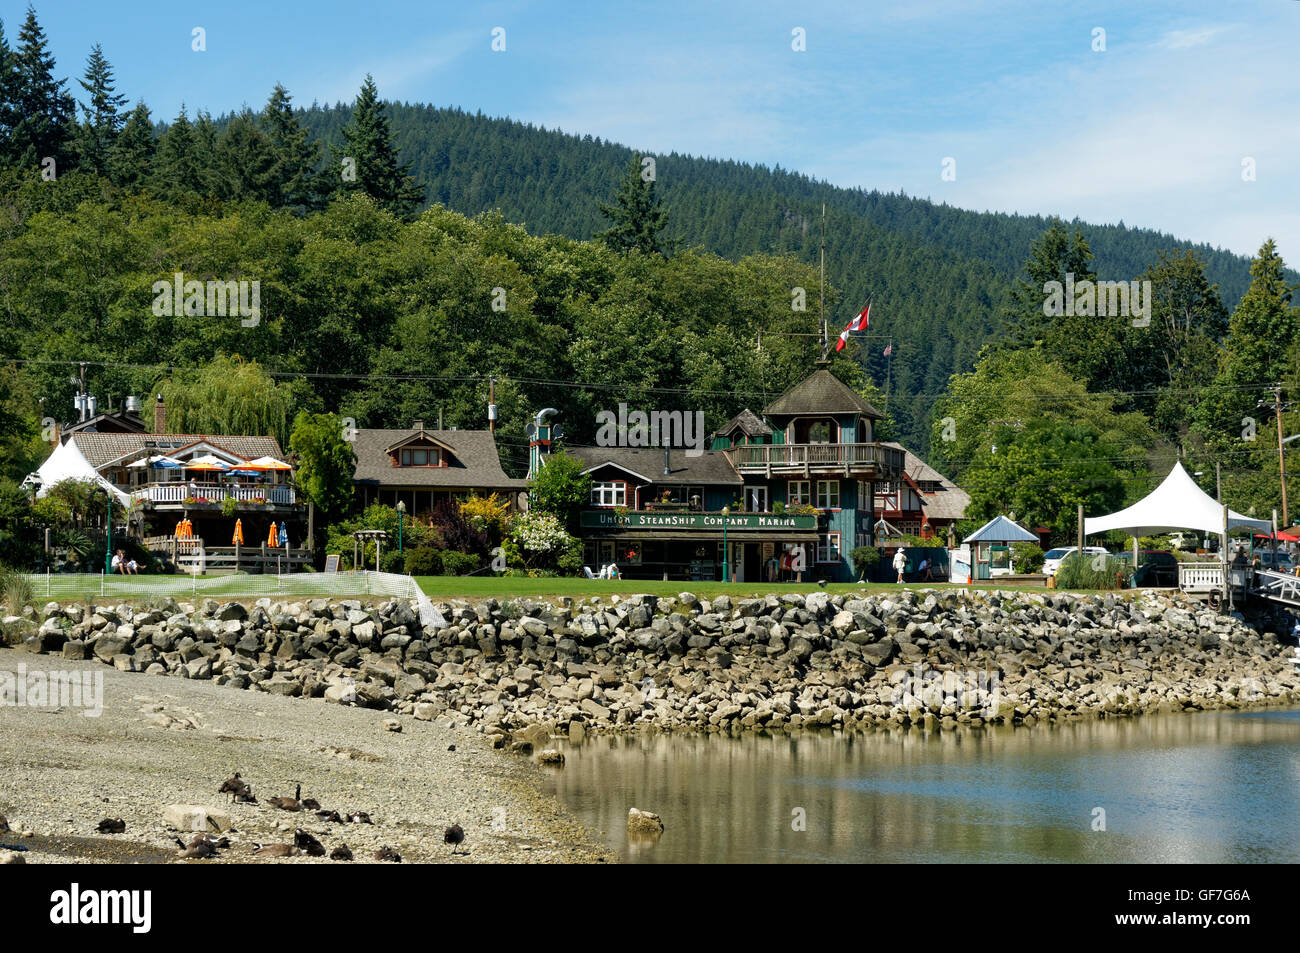 British Columbia Steamship Company Marina and other buildings at Snug Cove,  Bowen island, BC, Canada - Stock Image